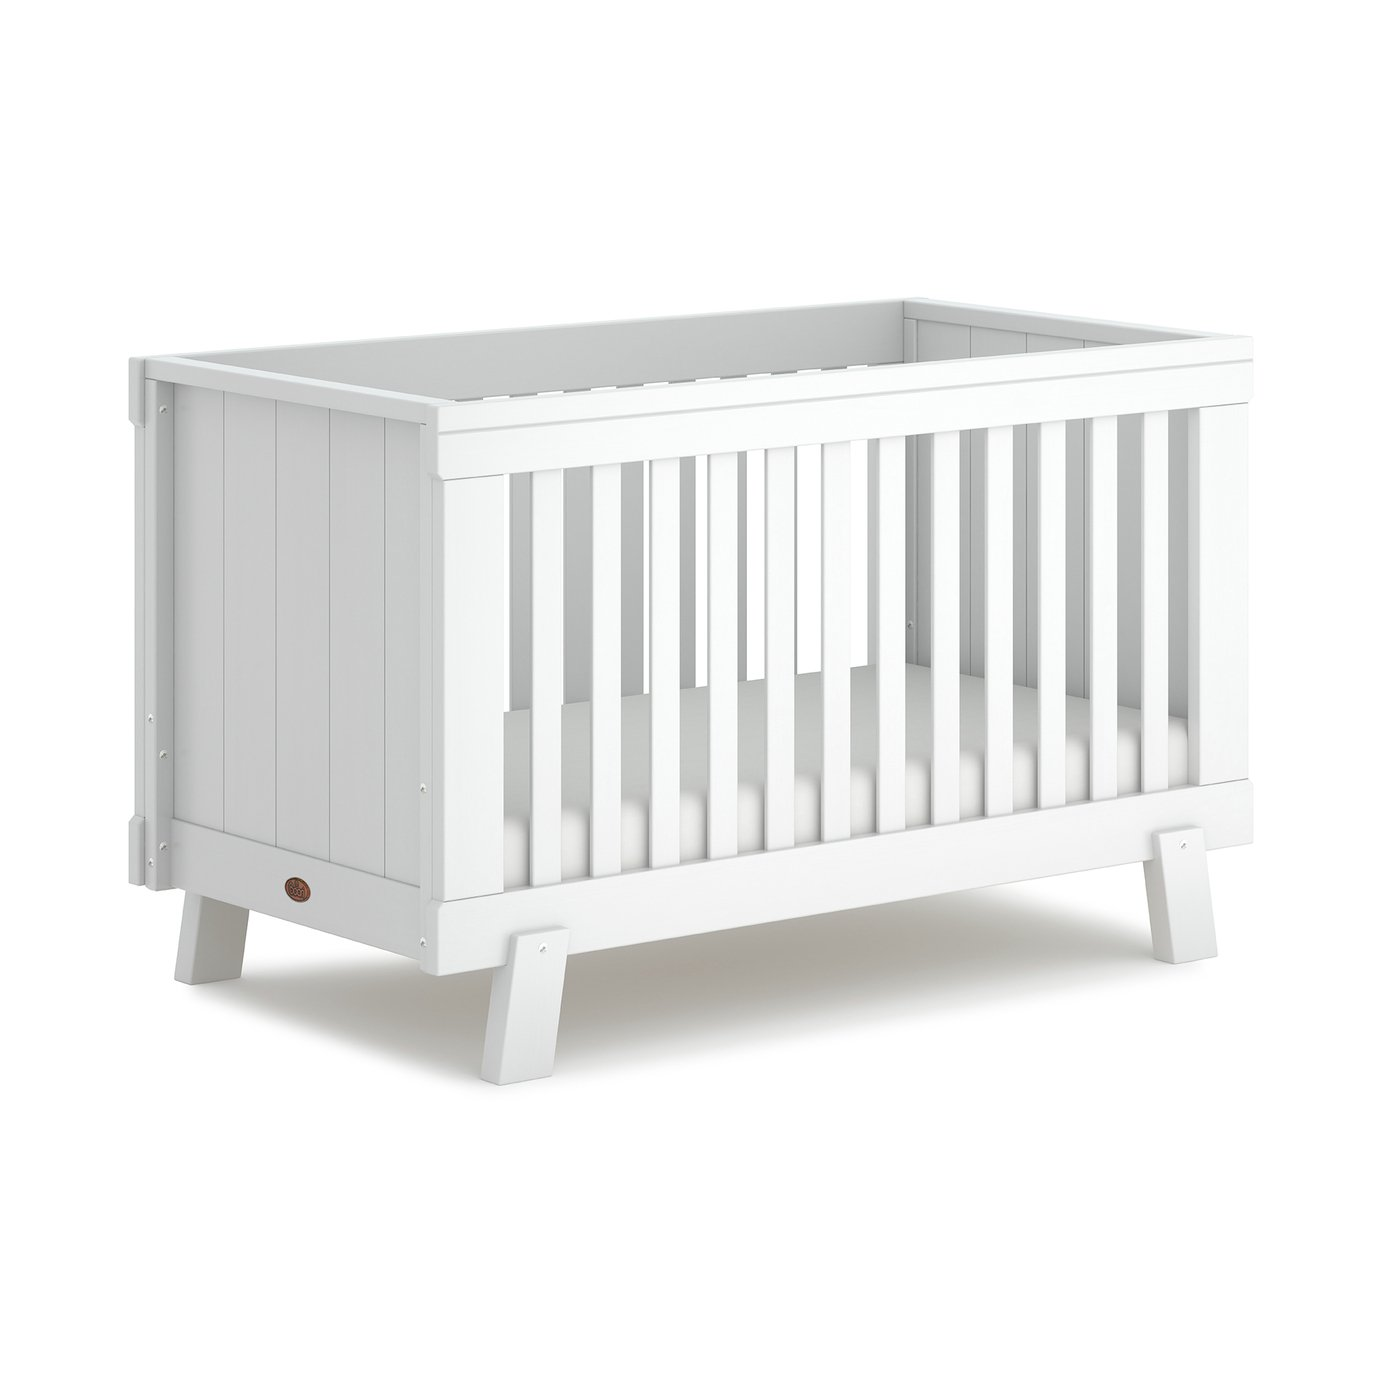 Boori Lucia Cot Bed - White